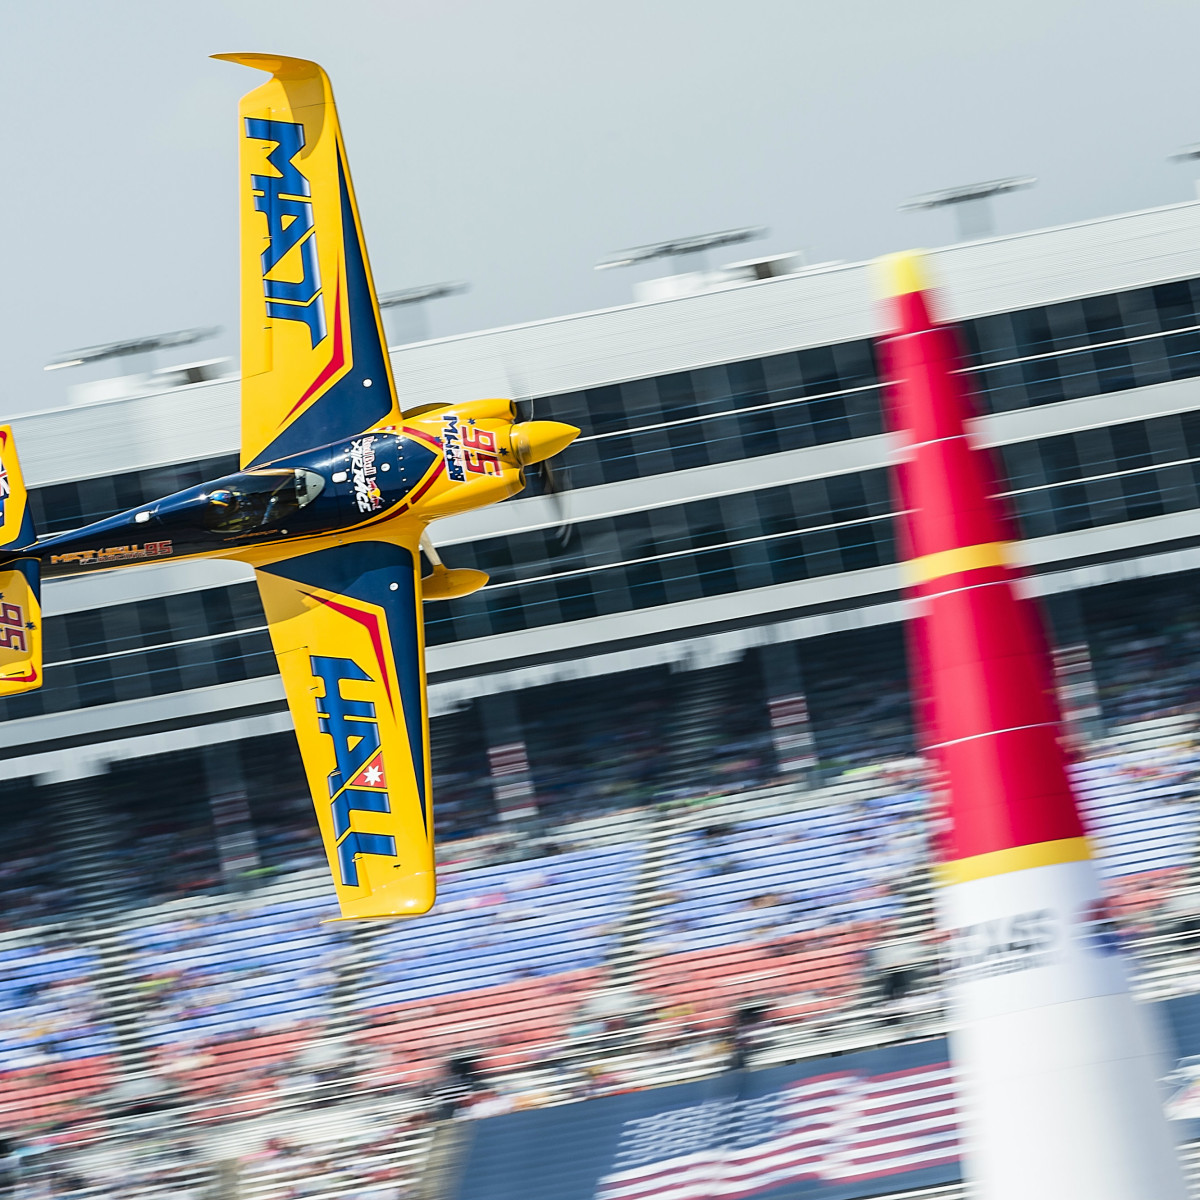 Red Bull Air Race in Fort Worth